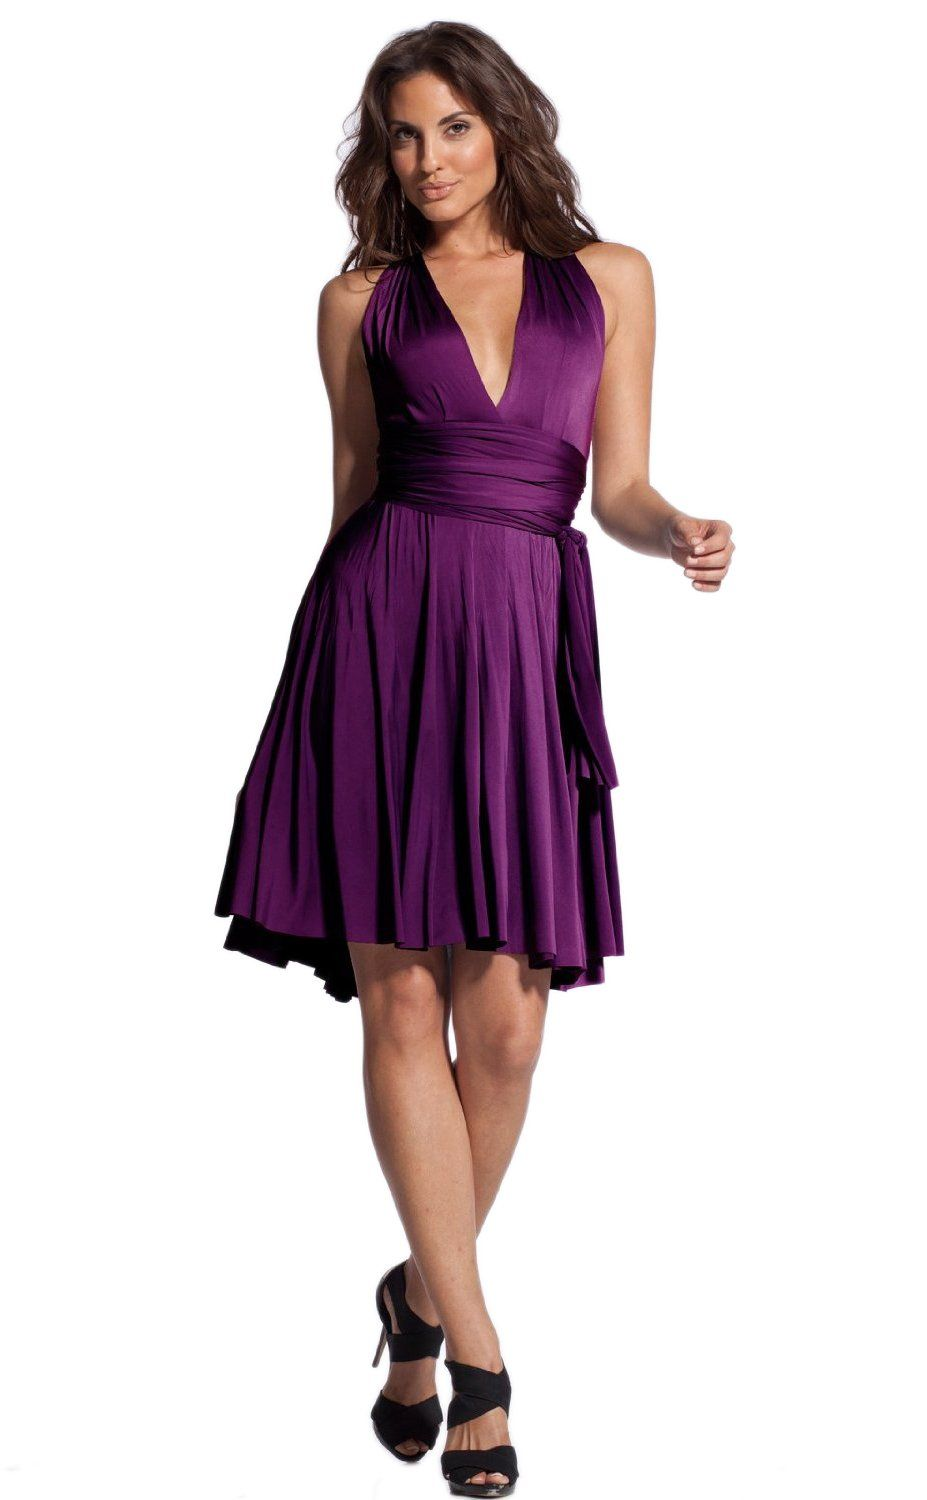 Maybe for Jana? - Vivian's Fashions Dress - Twist Wrap, 8 Ways to Wear, Regular and Plus Size at Amazon Women's Clothing store: